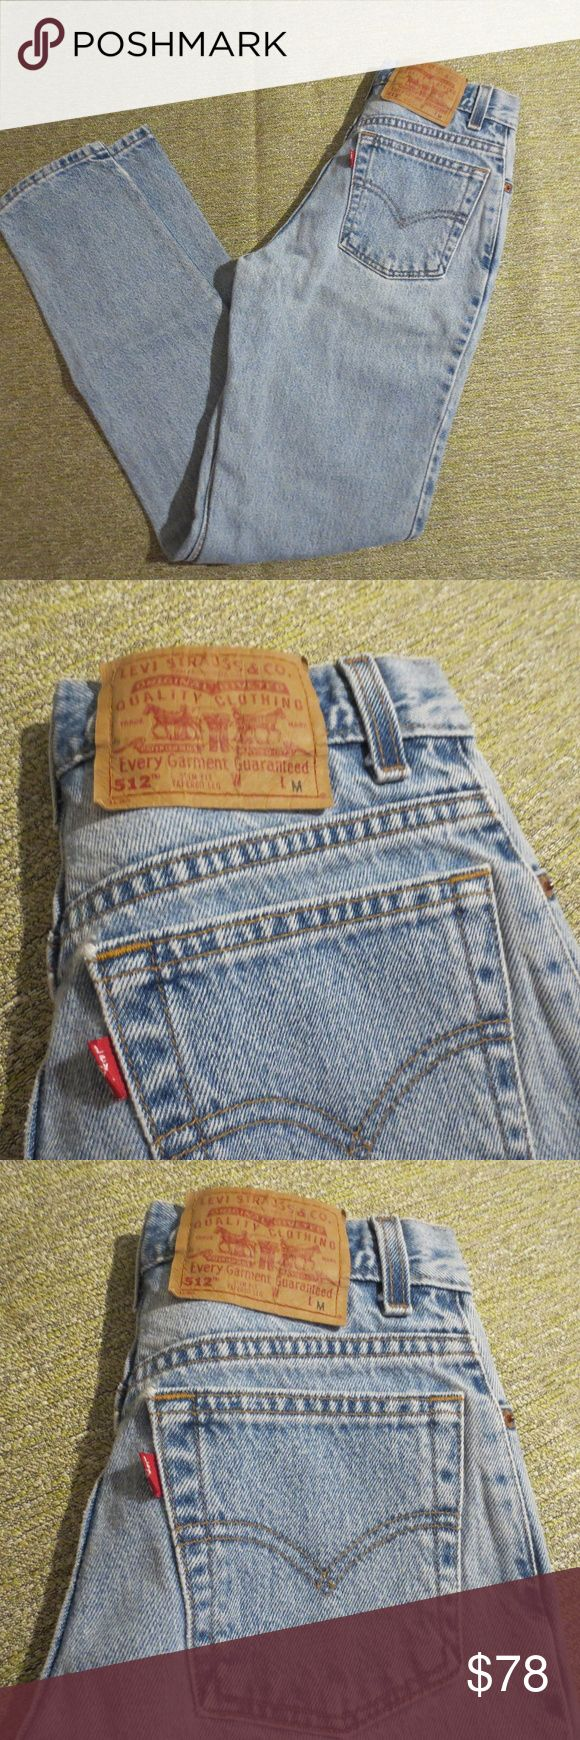 "Vintage Teeny-Tiny Mom Jeans Levis 512 Vintage teeny-tiny Mom Jeans Levis 512 Slim Fit Tapered Leg 3 JR. M These are the perfect mom jeans for the tiny girl!  Size 3 JR M - Waist 24"" - Hips 34"" - Length 39"" - Inseam 29"" Very nice, clean condition! Waiting to be loved again! Levi's Jeans Straight Leg"